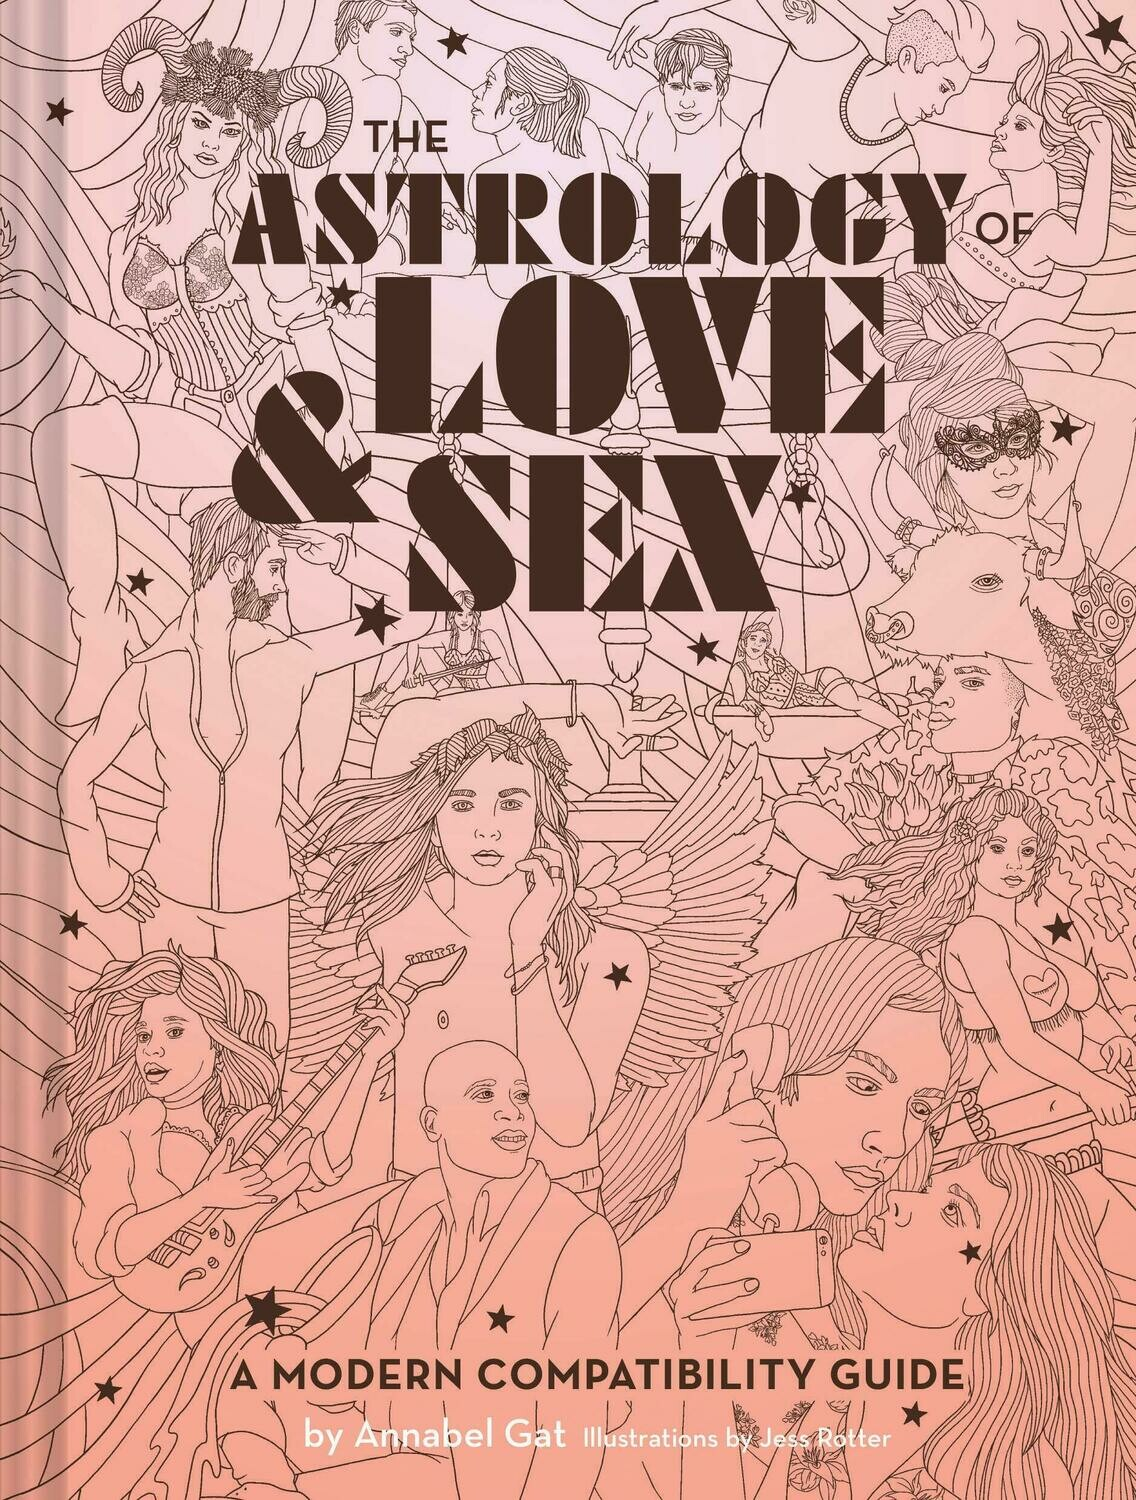 The Astrology Love and Sex